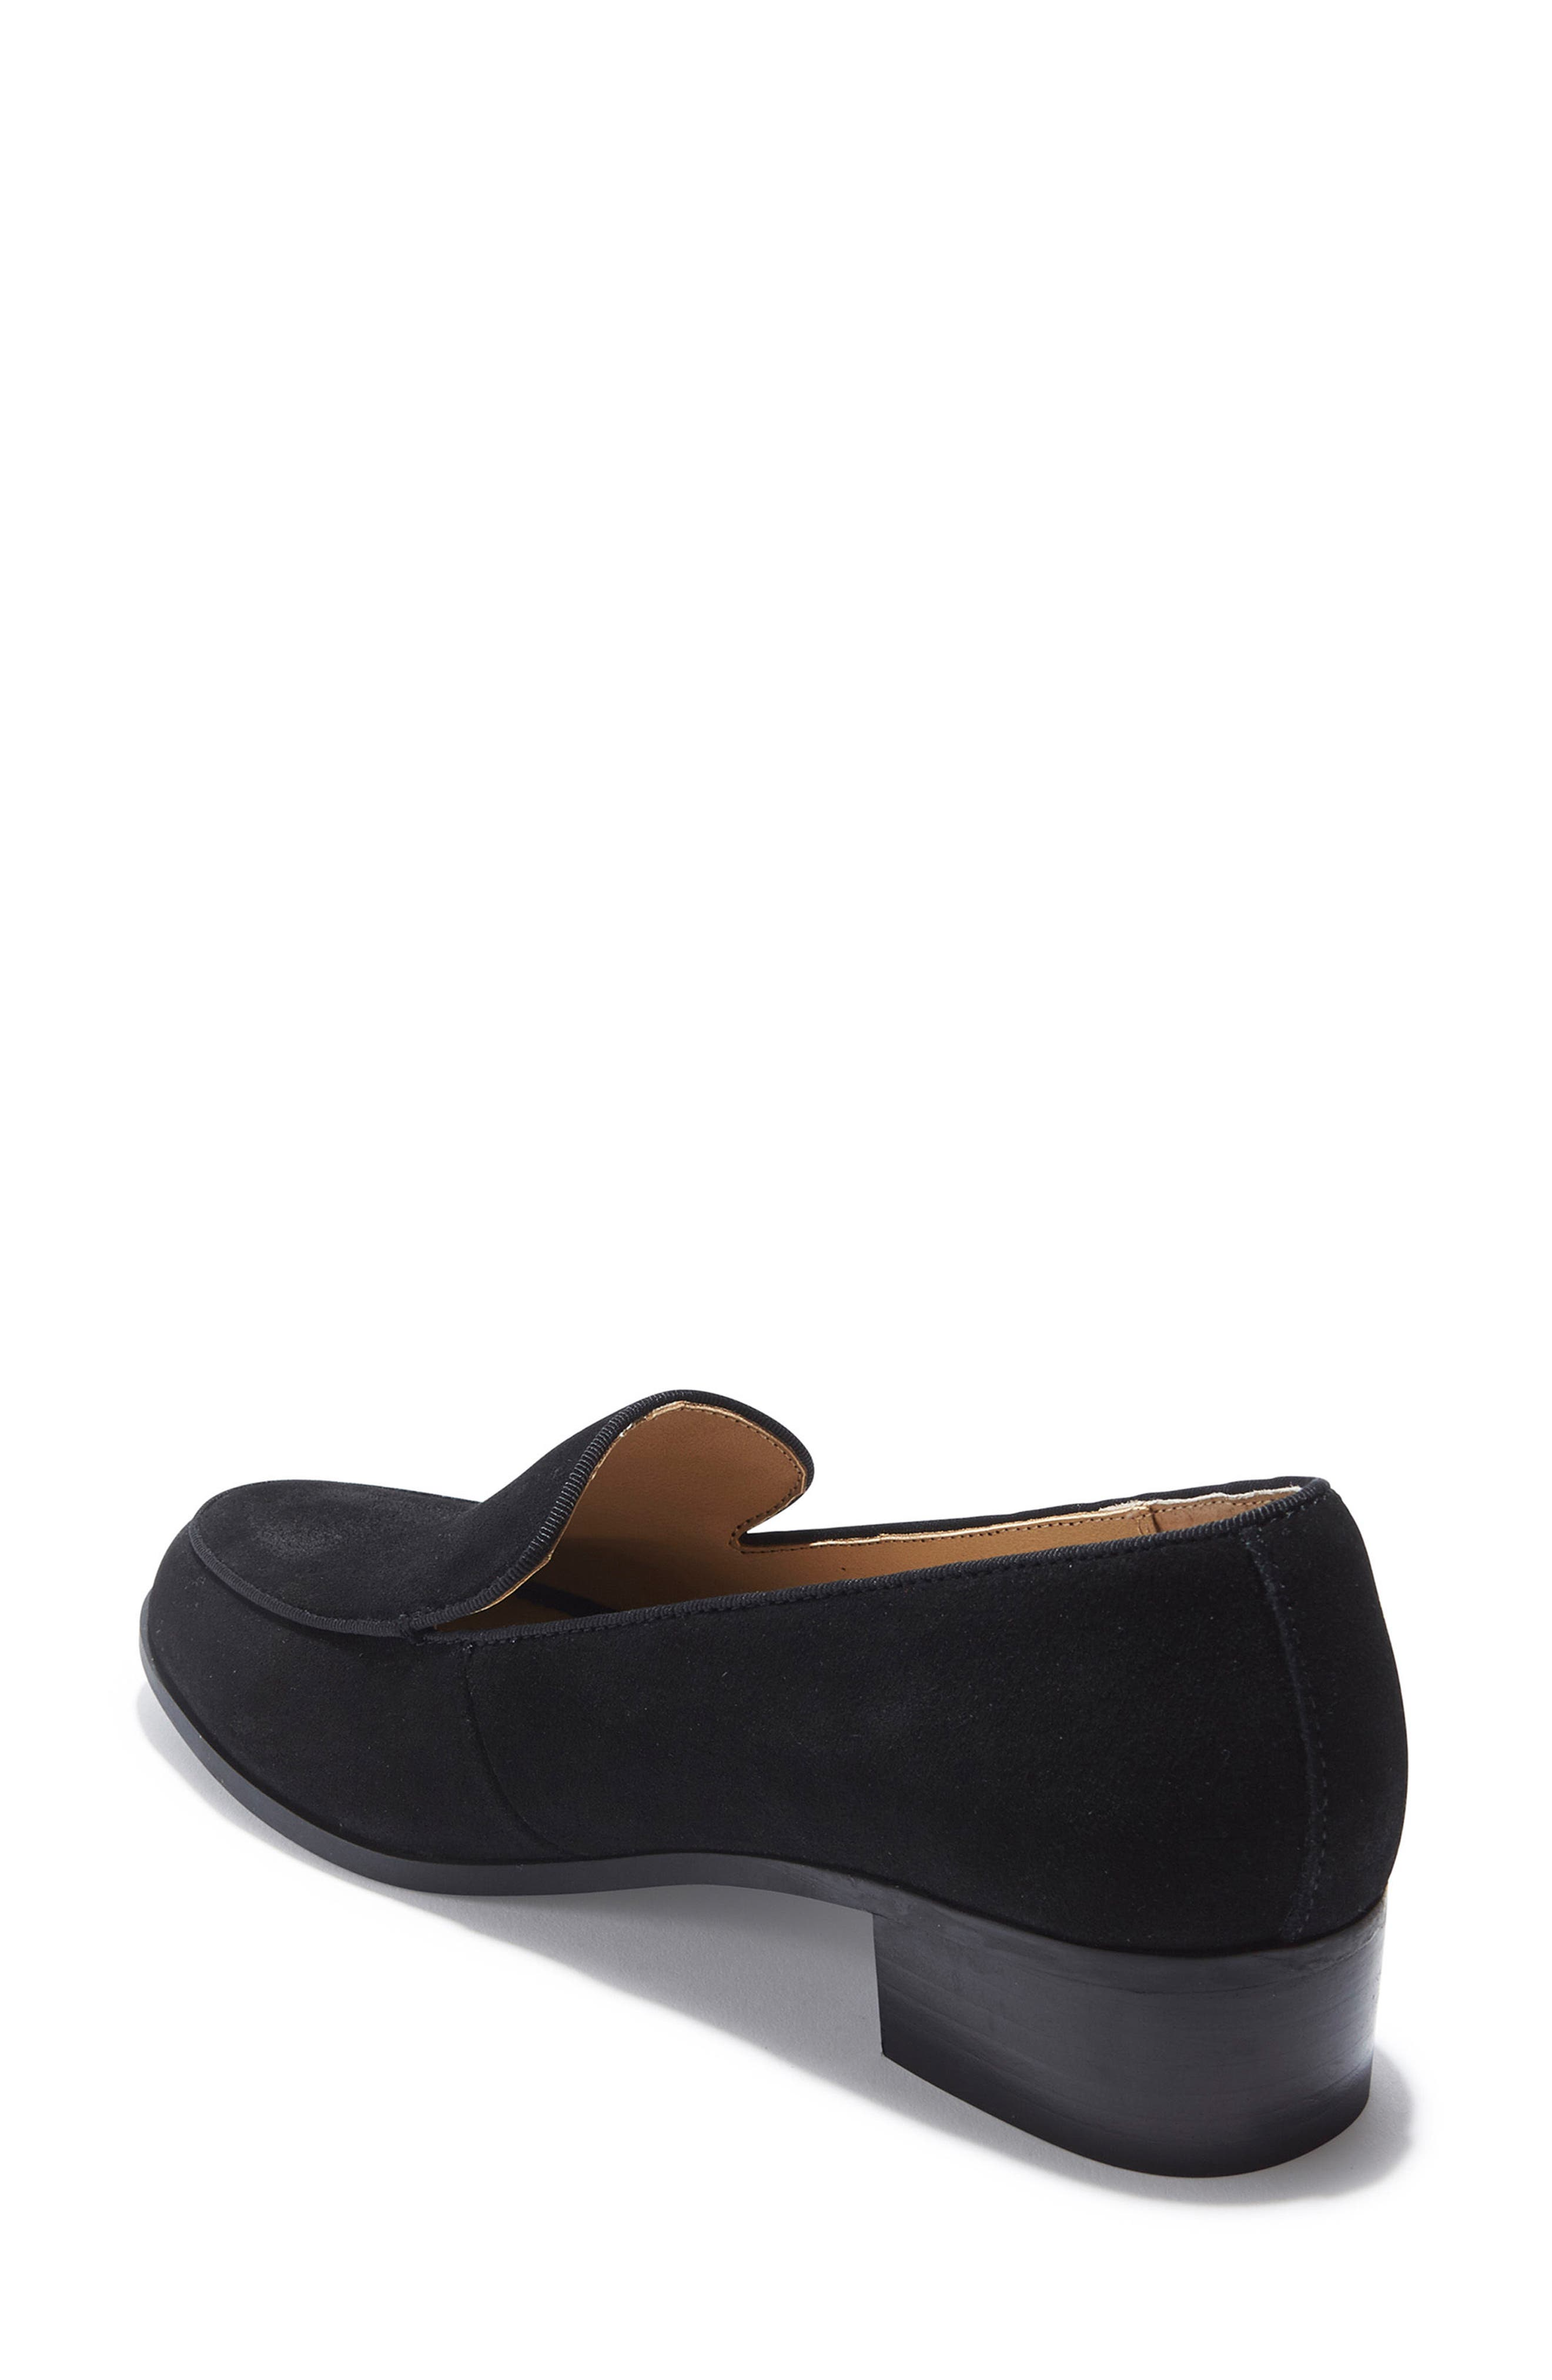 Alternate Image 2  - Me Too Jazzy Loafer (Women)